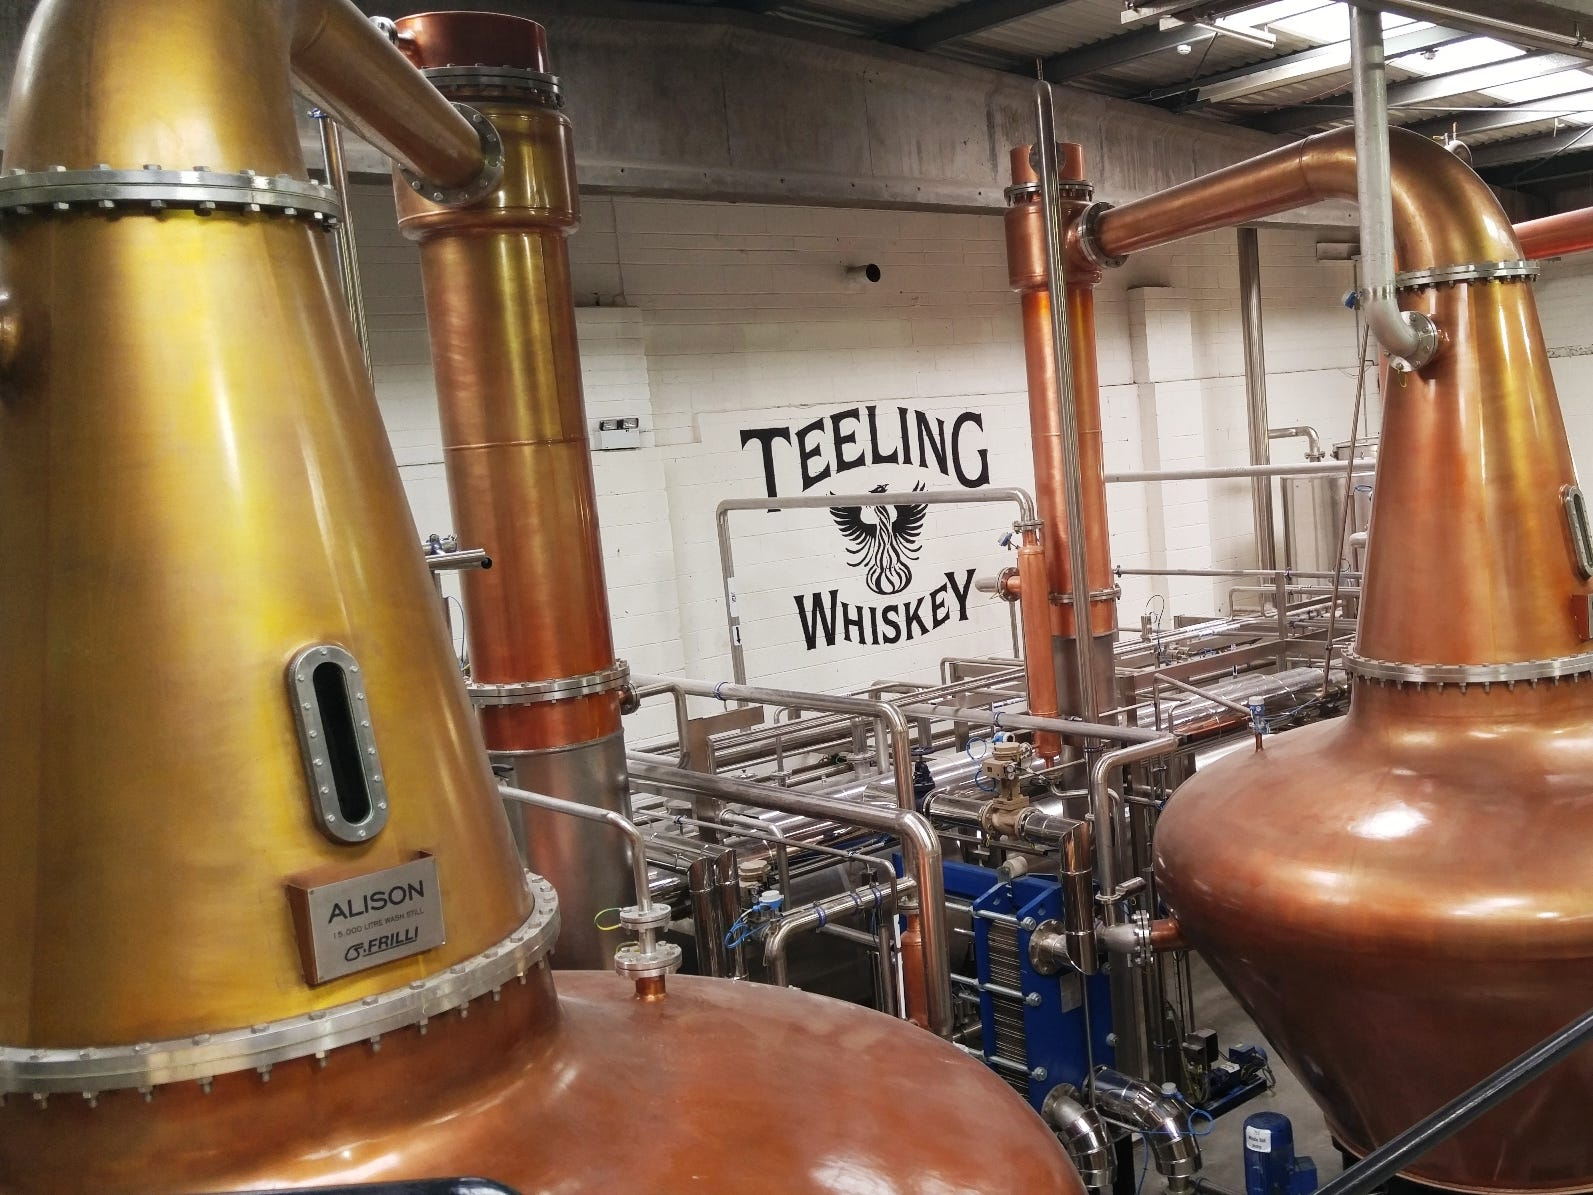 """When Teeling Whiskey was reborn in 2012, there were four distilleries on the island of Ireland,"" says Jack Teeling, who founded the distillery with his brother Stephen. ""Our success and the continued growth of the category has been the catalyst for the current evolution, or revolution, happening within Irish whiskey."" There are at least 22 active Irish whiskey distilleries right now."